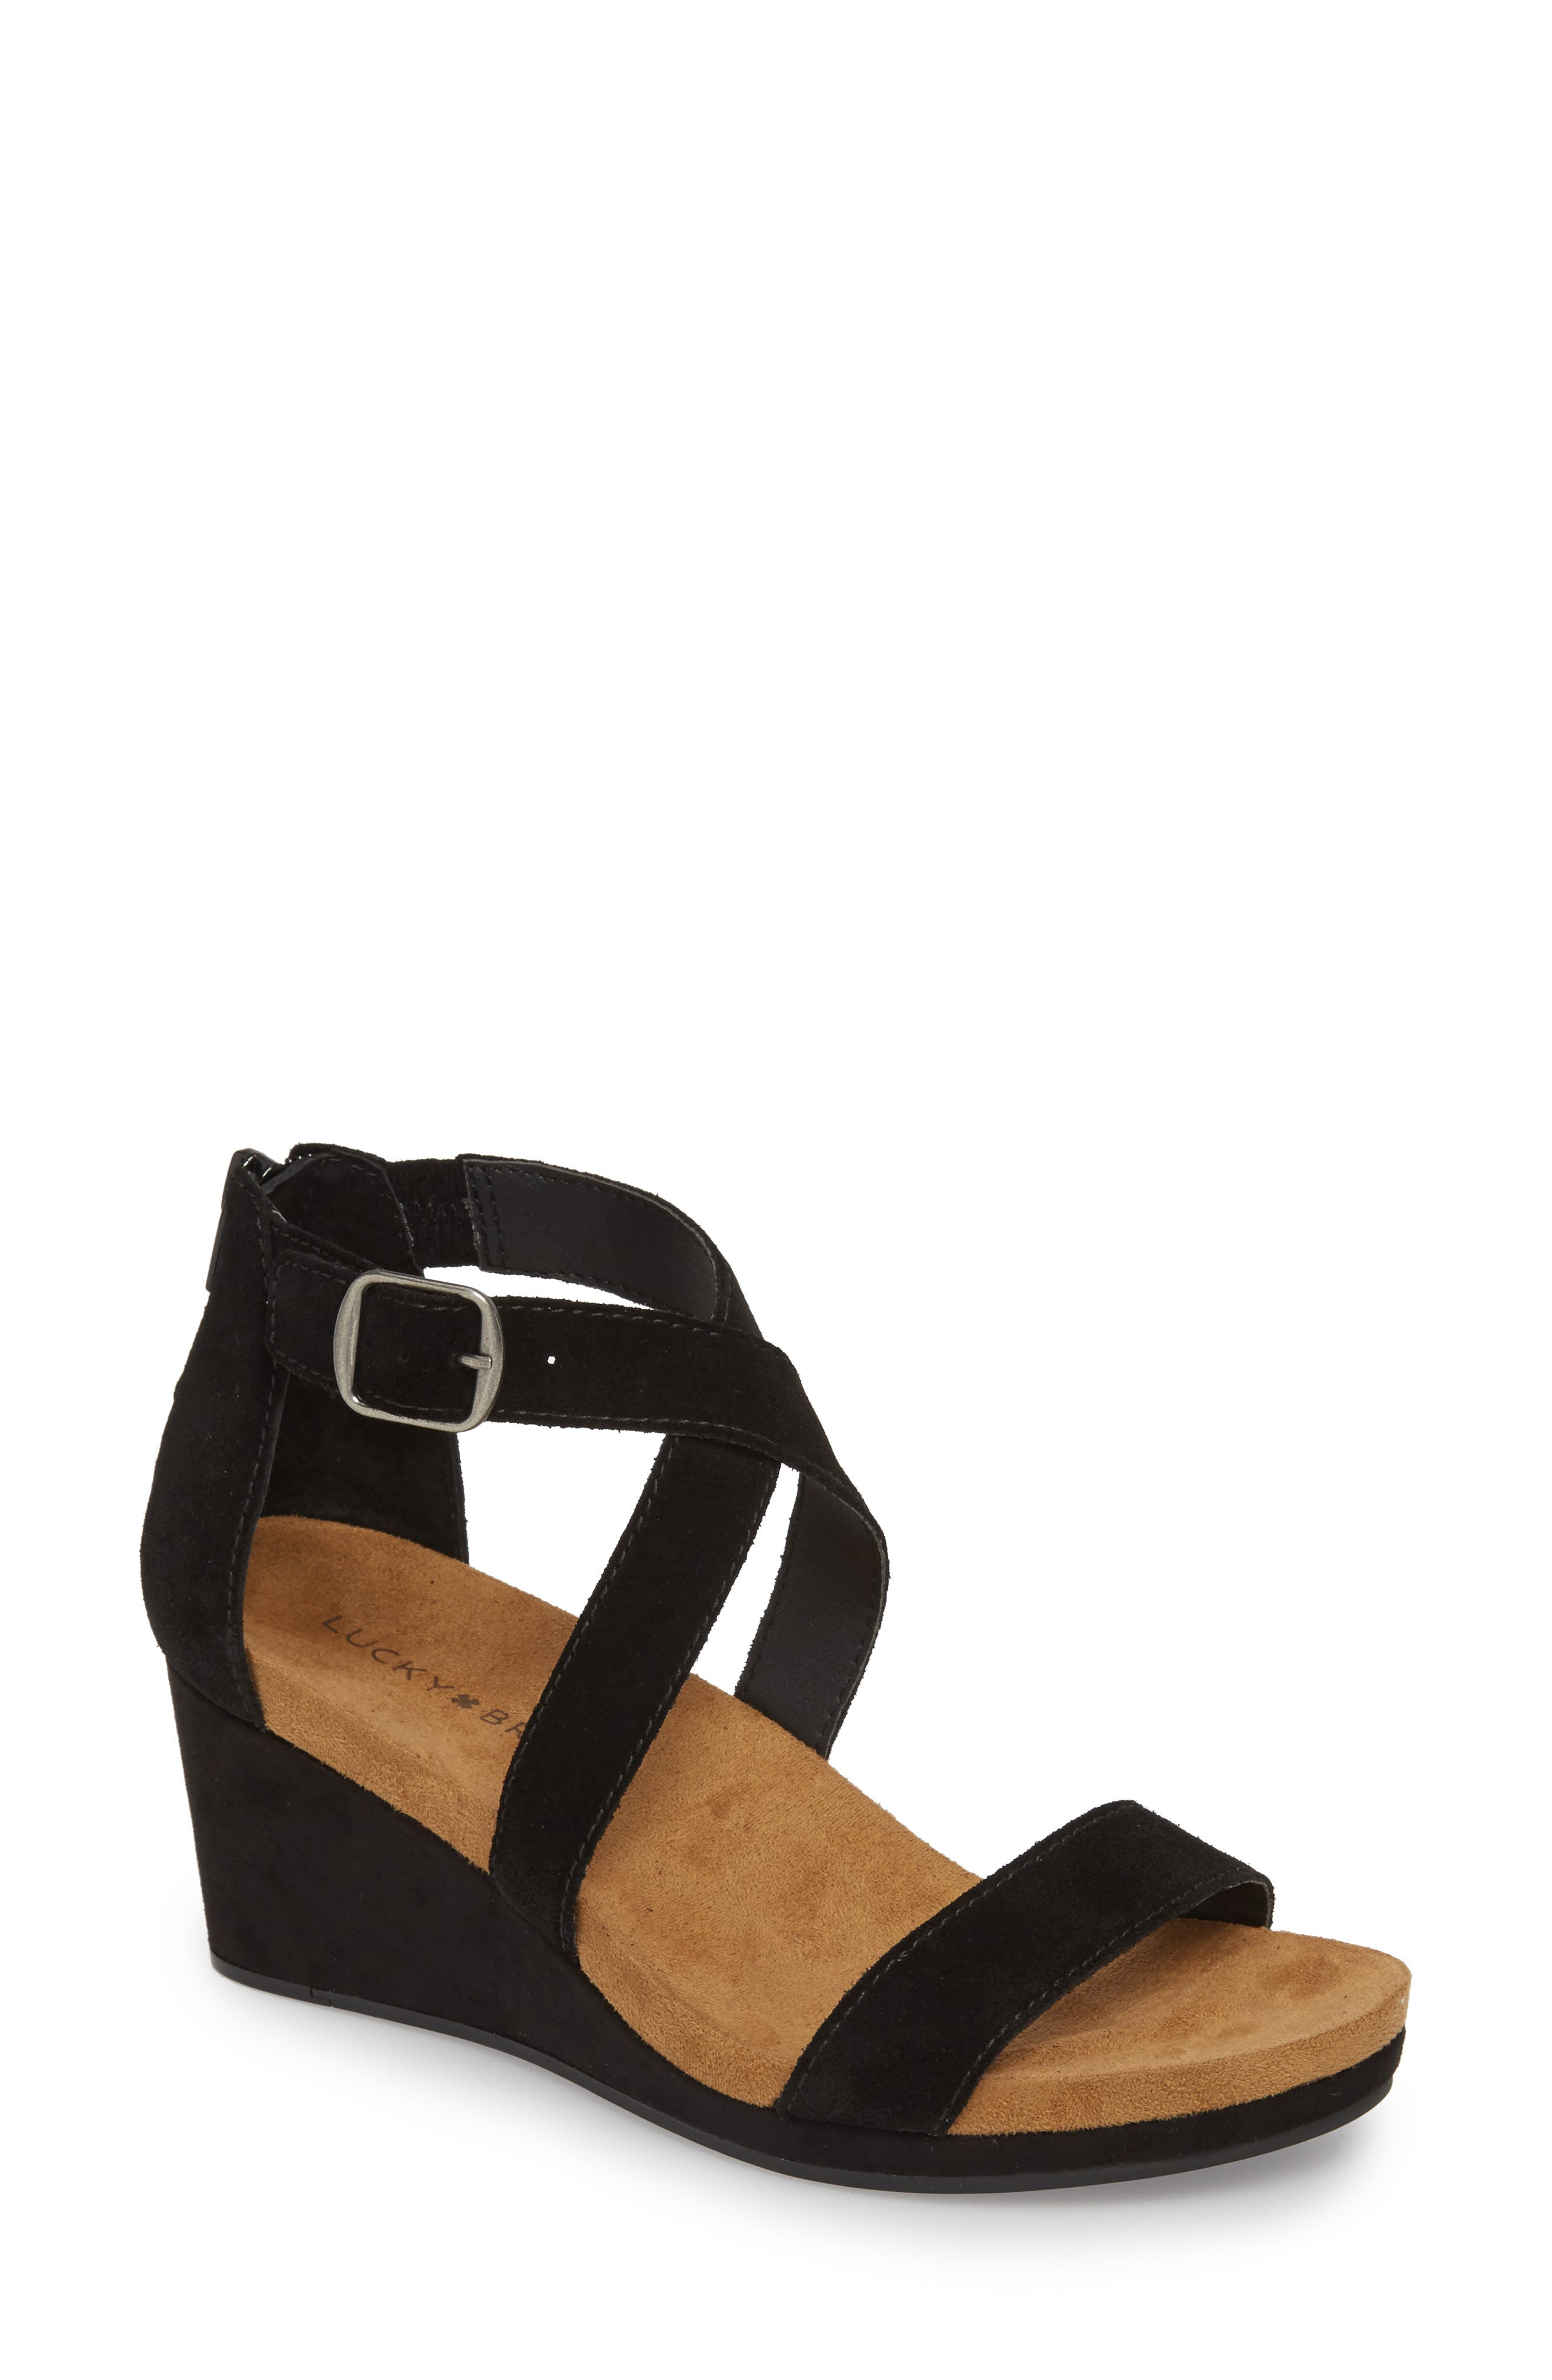 870fefc9e609 Lucky Brand Kenadee Wedge Sandal In Black Suede